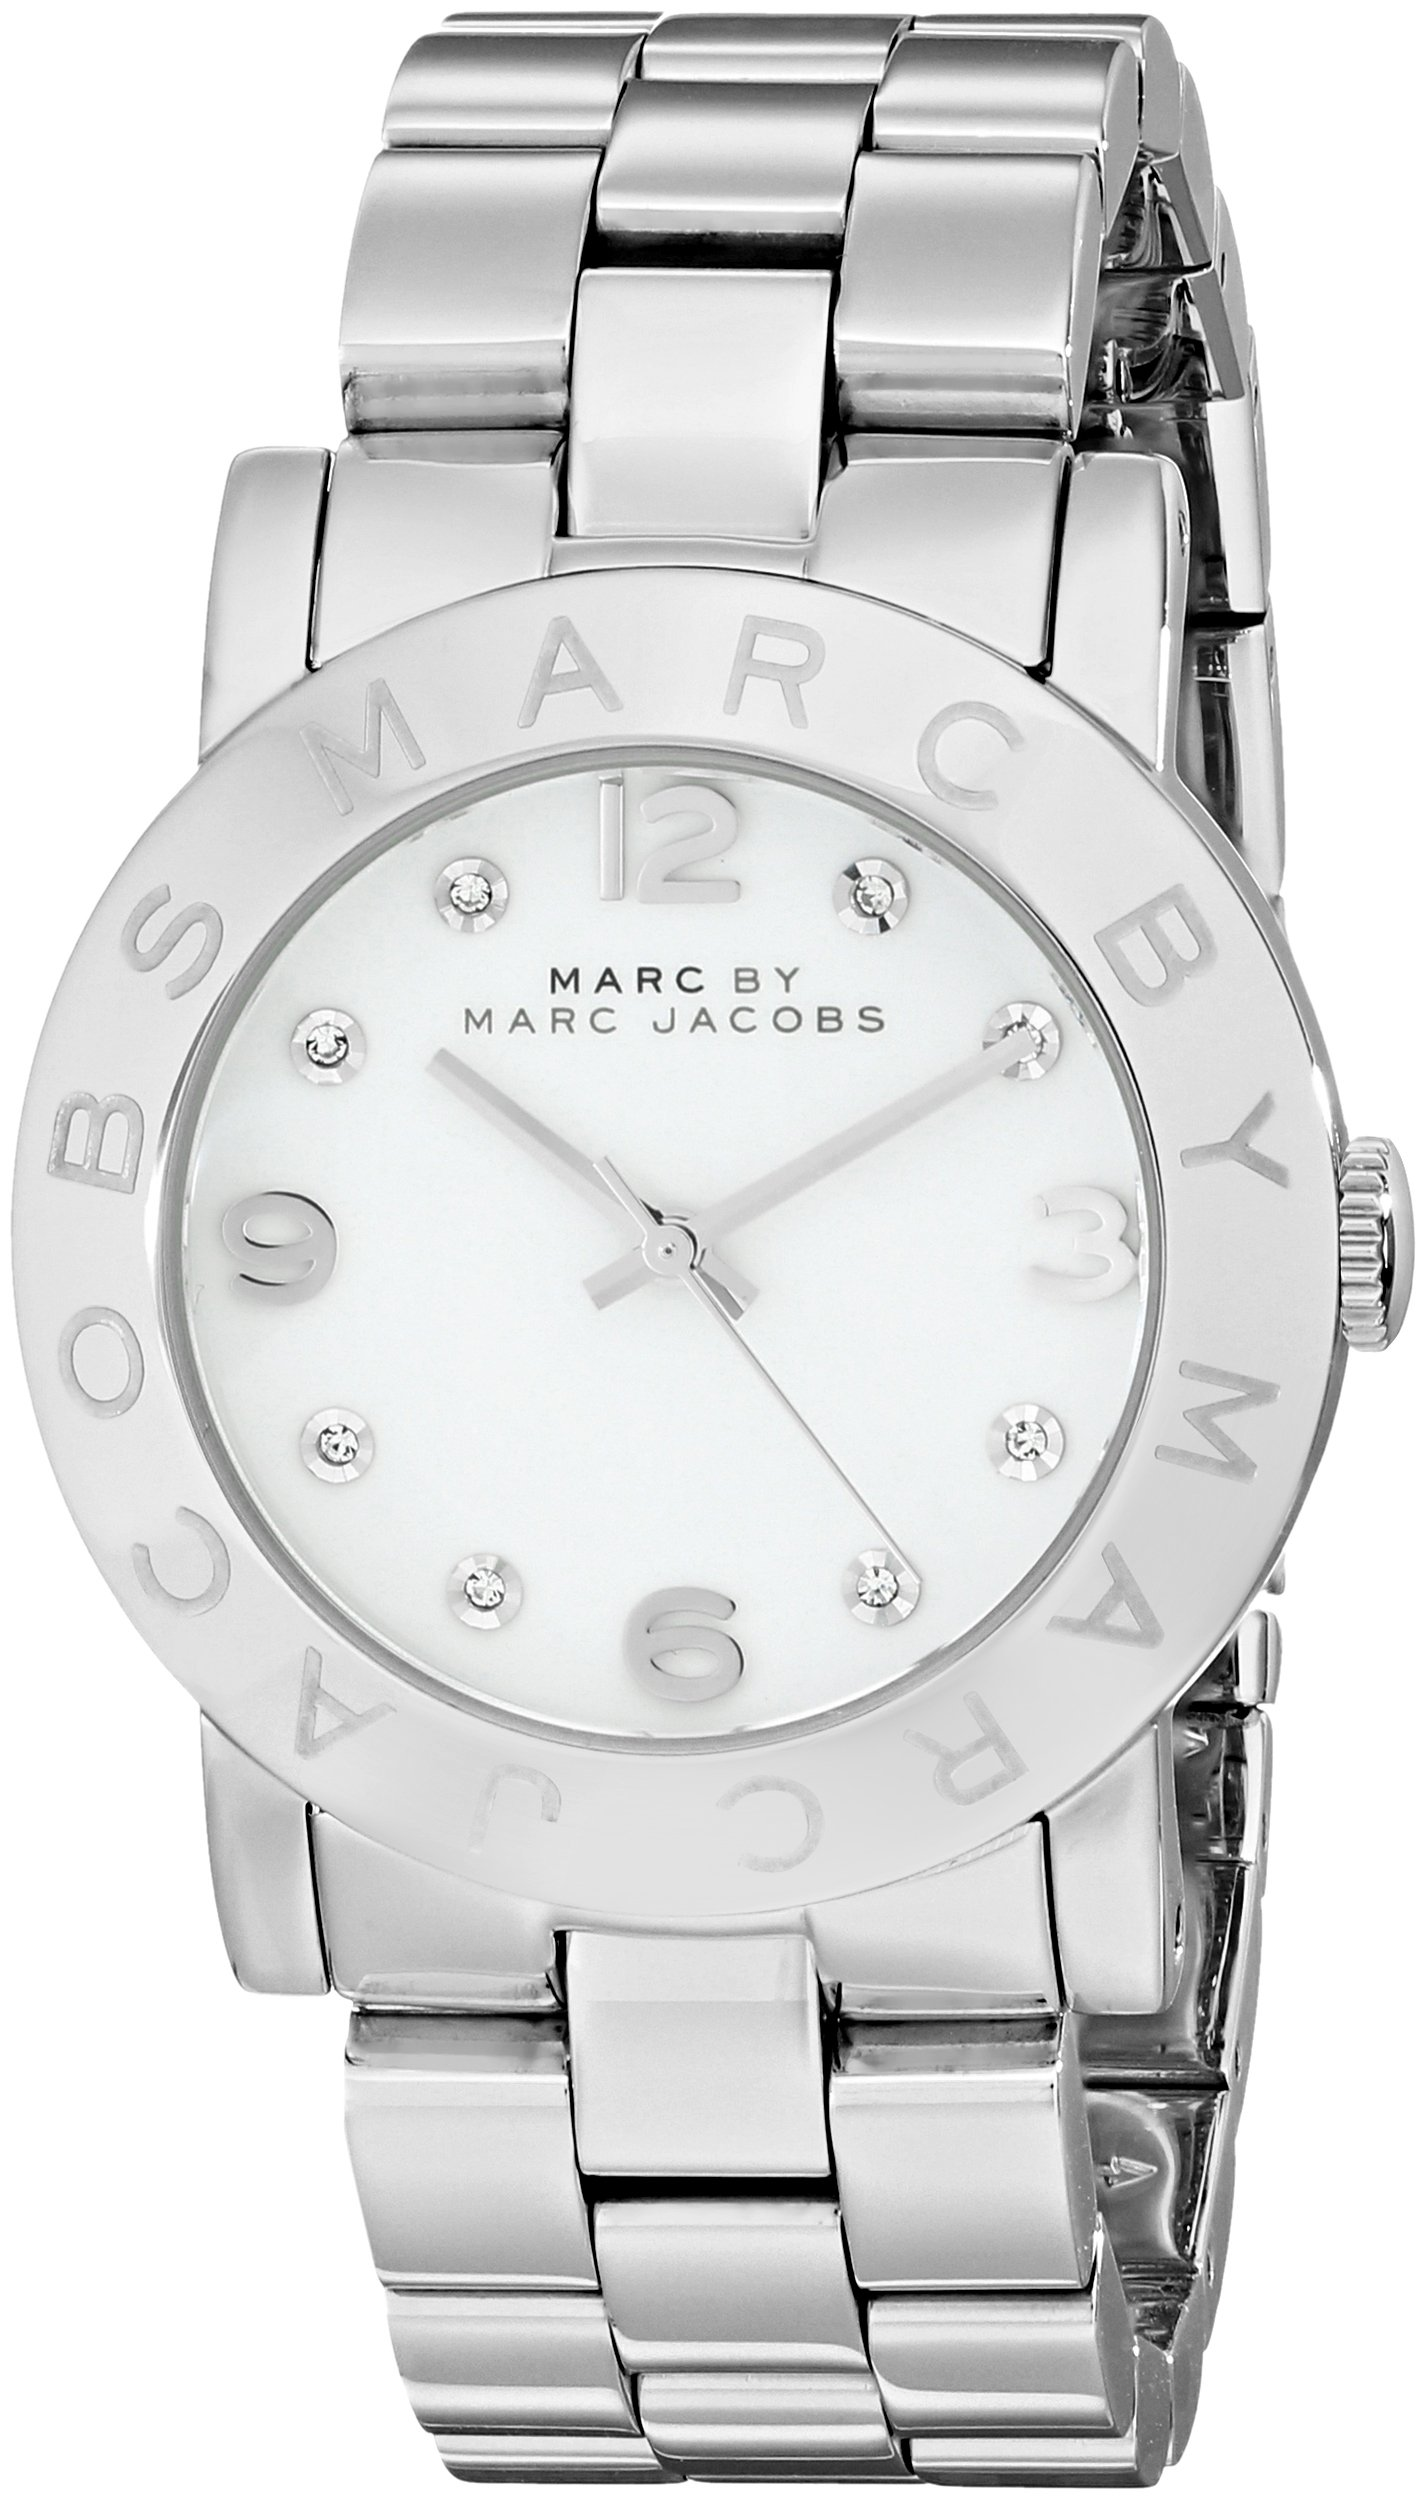 Marc by Marc Jacobs Women's MBM3054 Amy Stainless Steel Watch with Link Bracelet